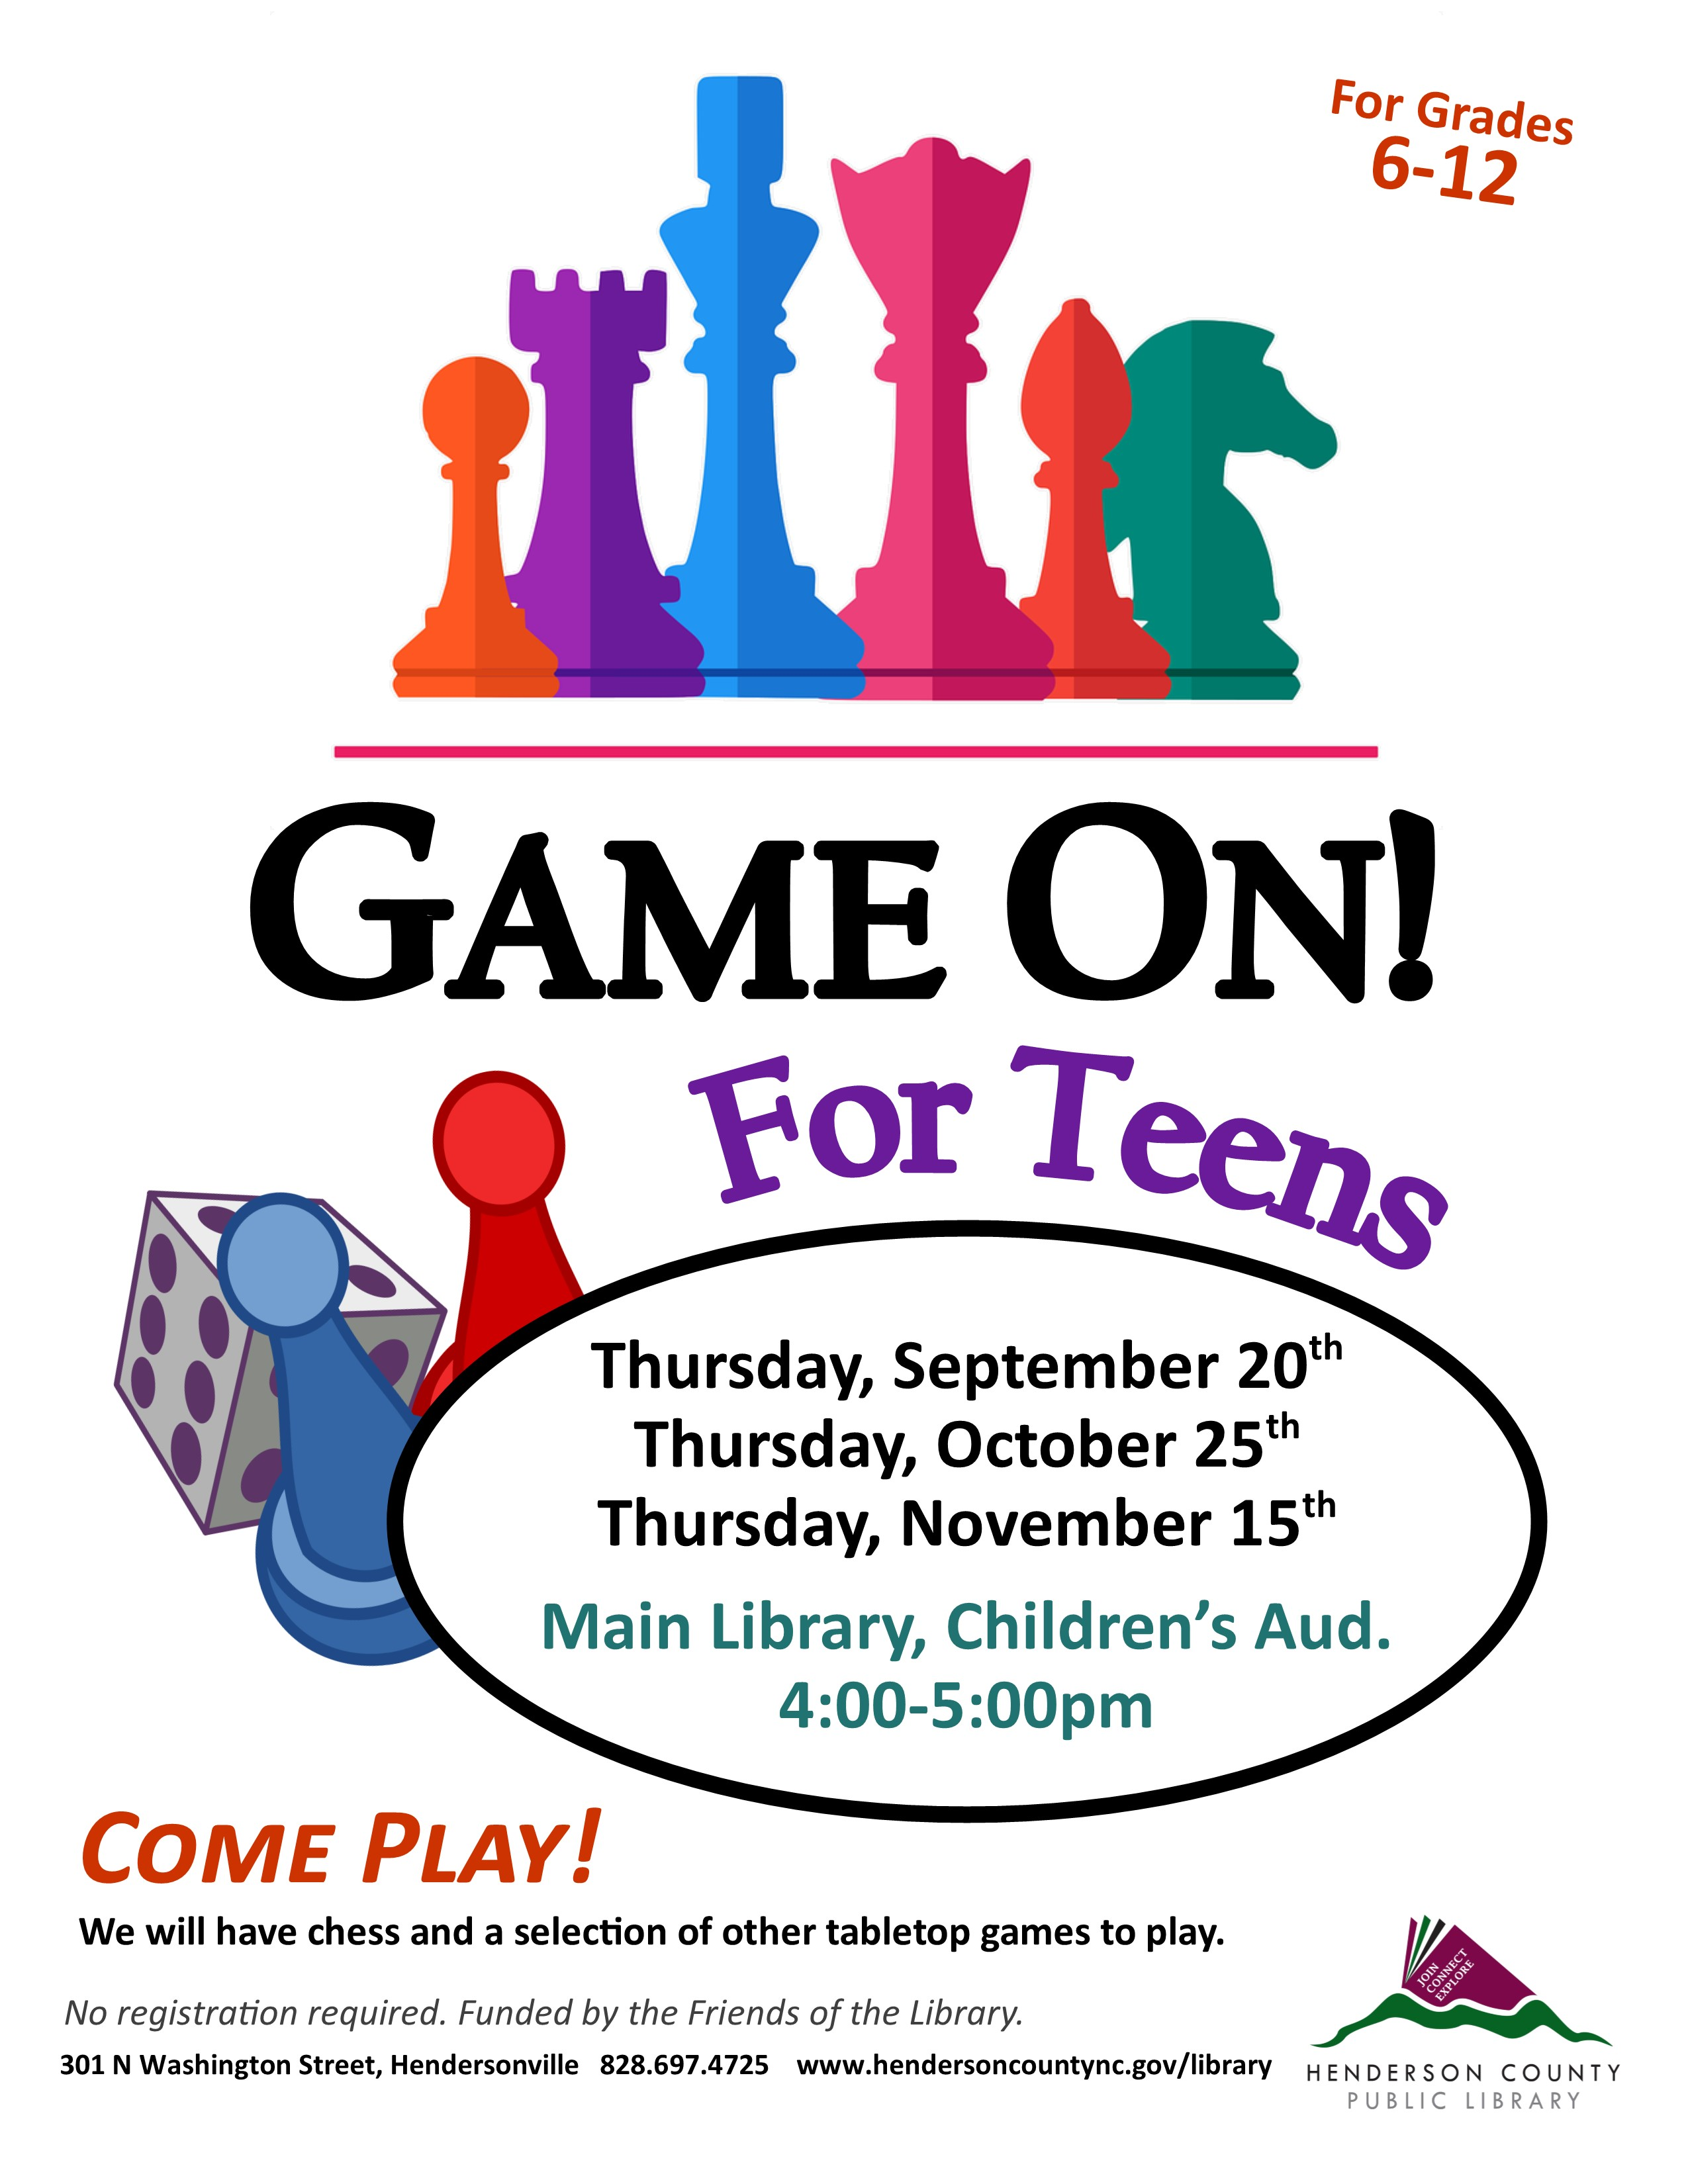 Game On! for Teens